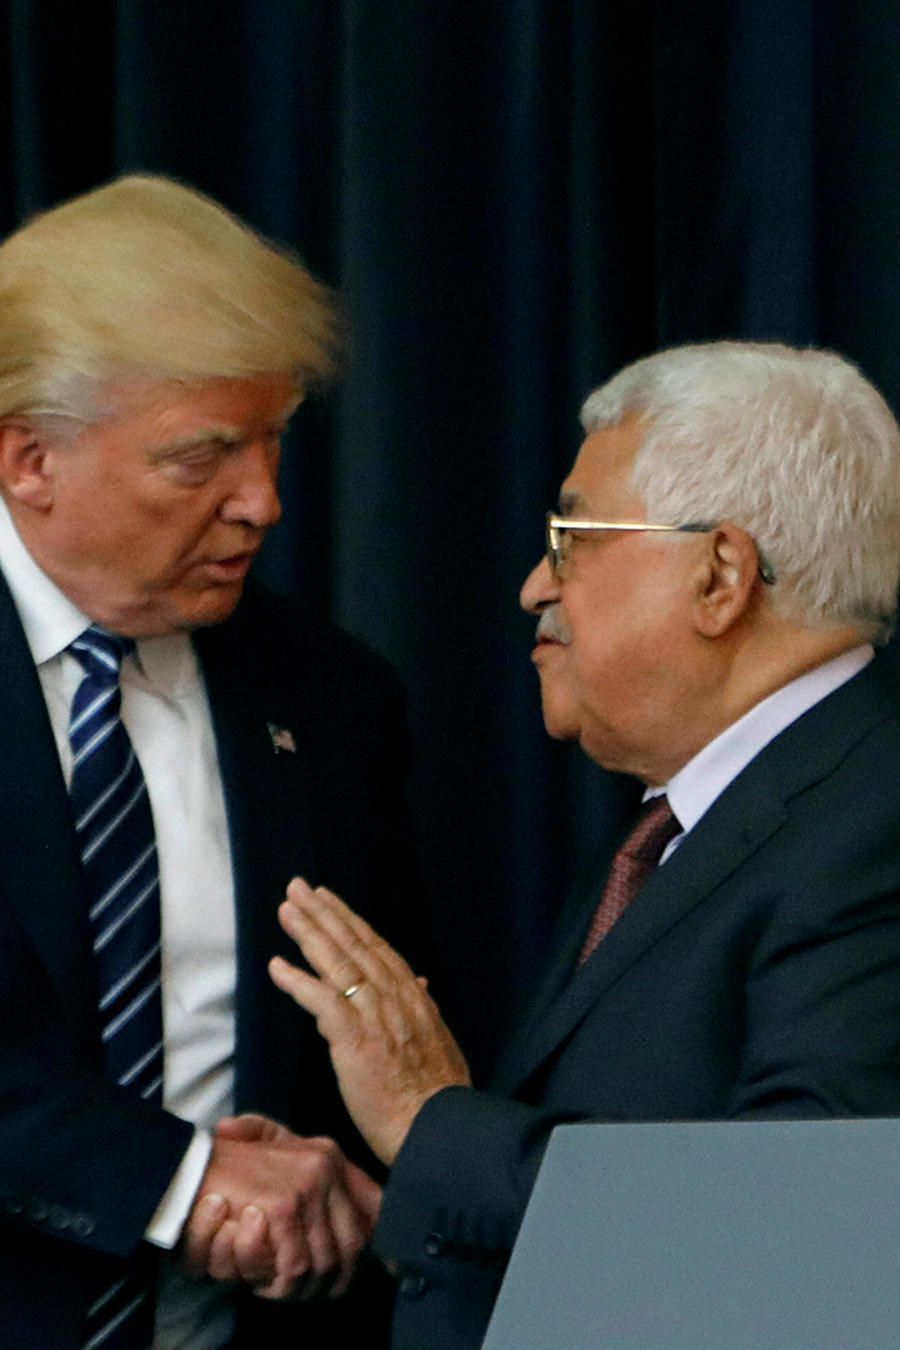 U.S. President Donald Trump shakes hands with Palestinian President Mahmoud Abbas during a joint news conference at the presidential headquarters in the West Bank town of Bethlehem